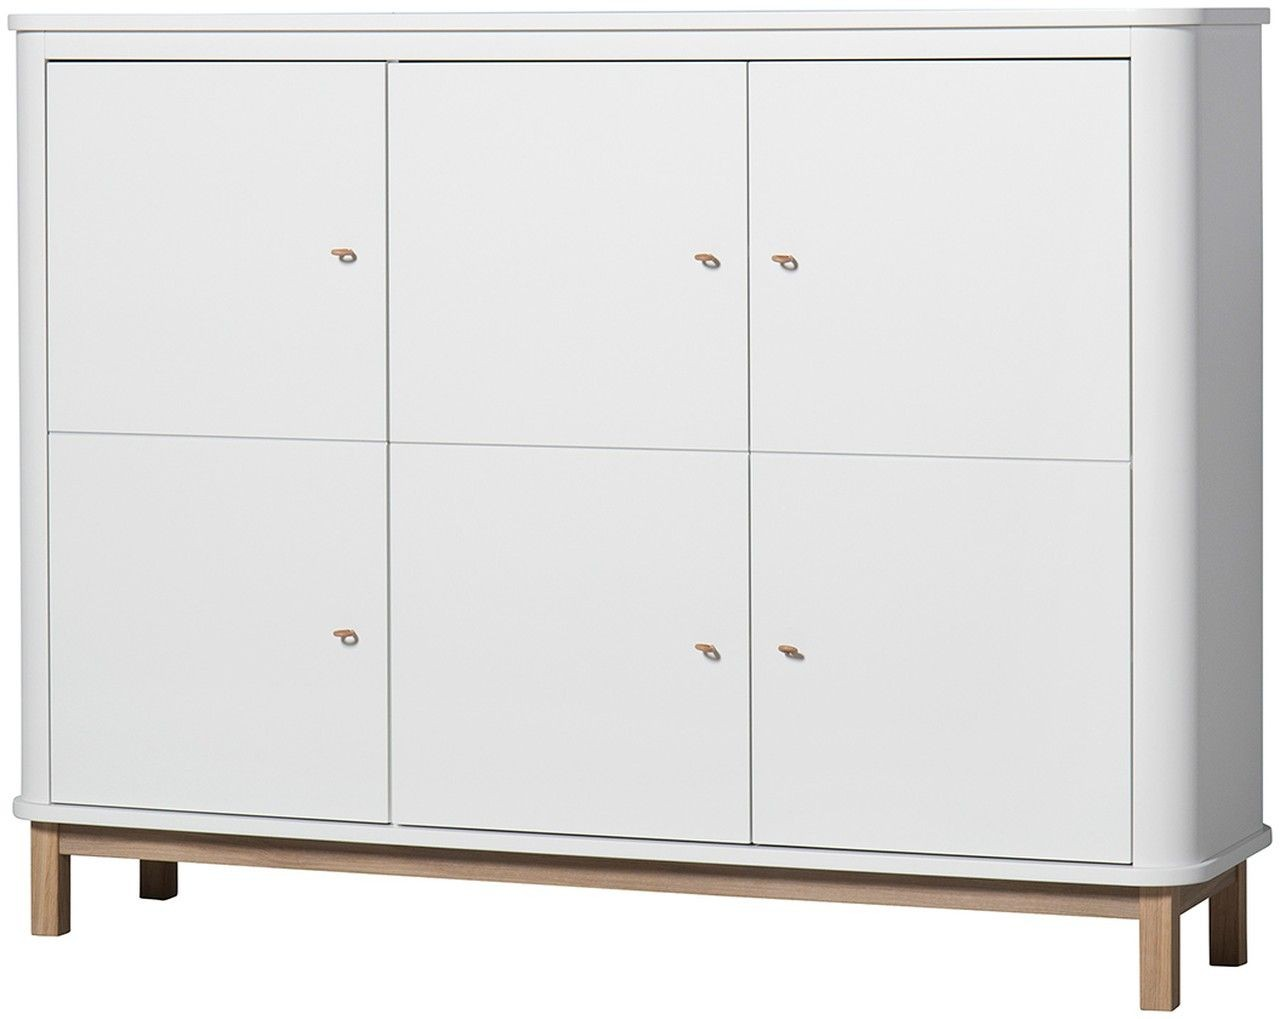 Multi-Schrank Wood Oliver Furniture - Kleine Fabriek